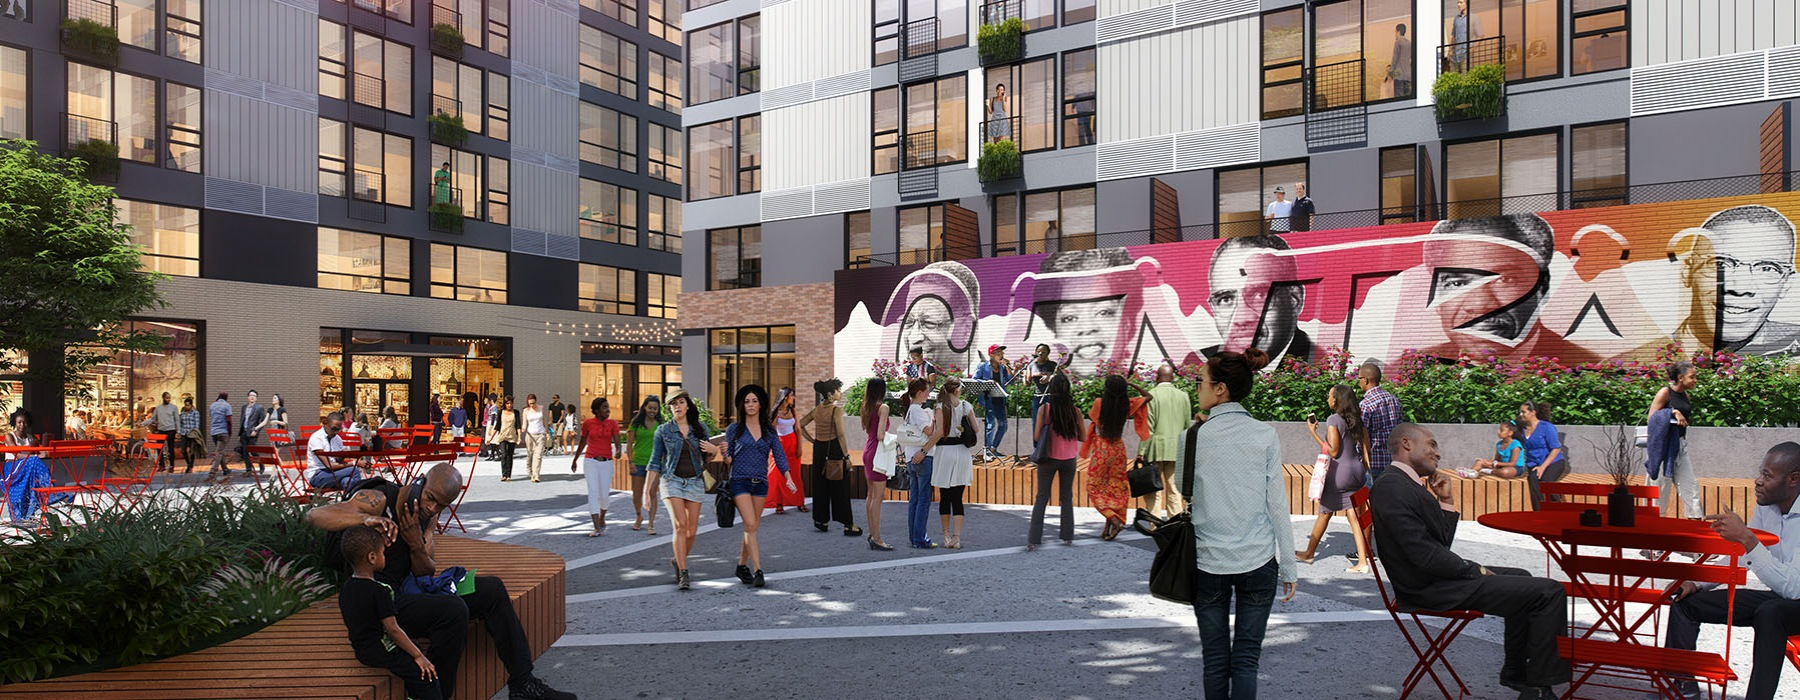 people walking along and sitting in outdoor area of Midtown Square building with art mural